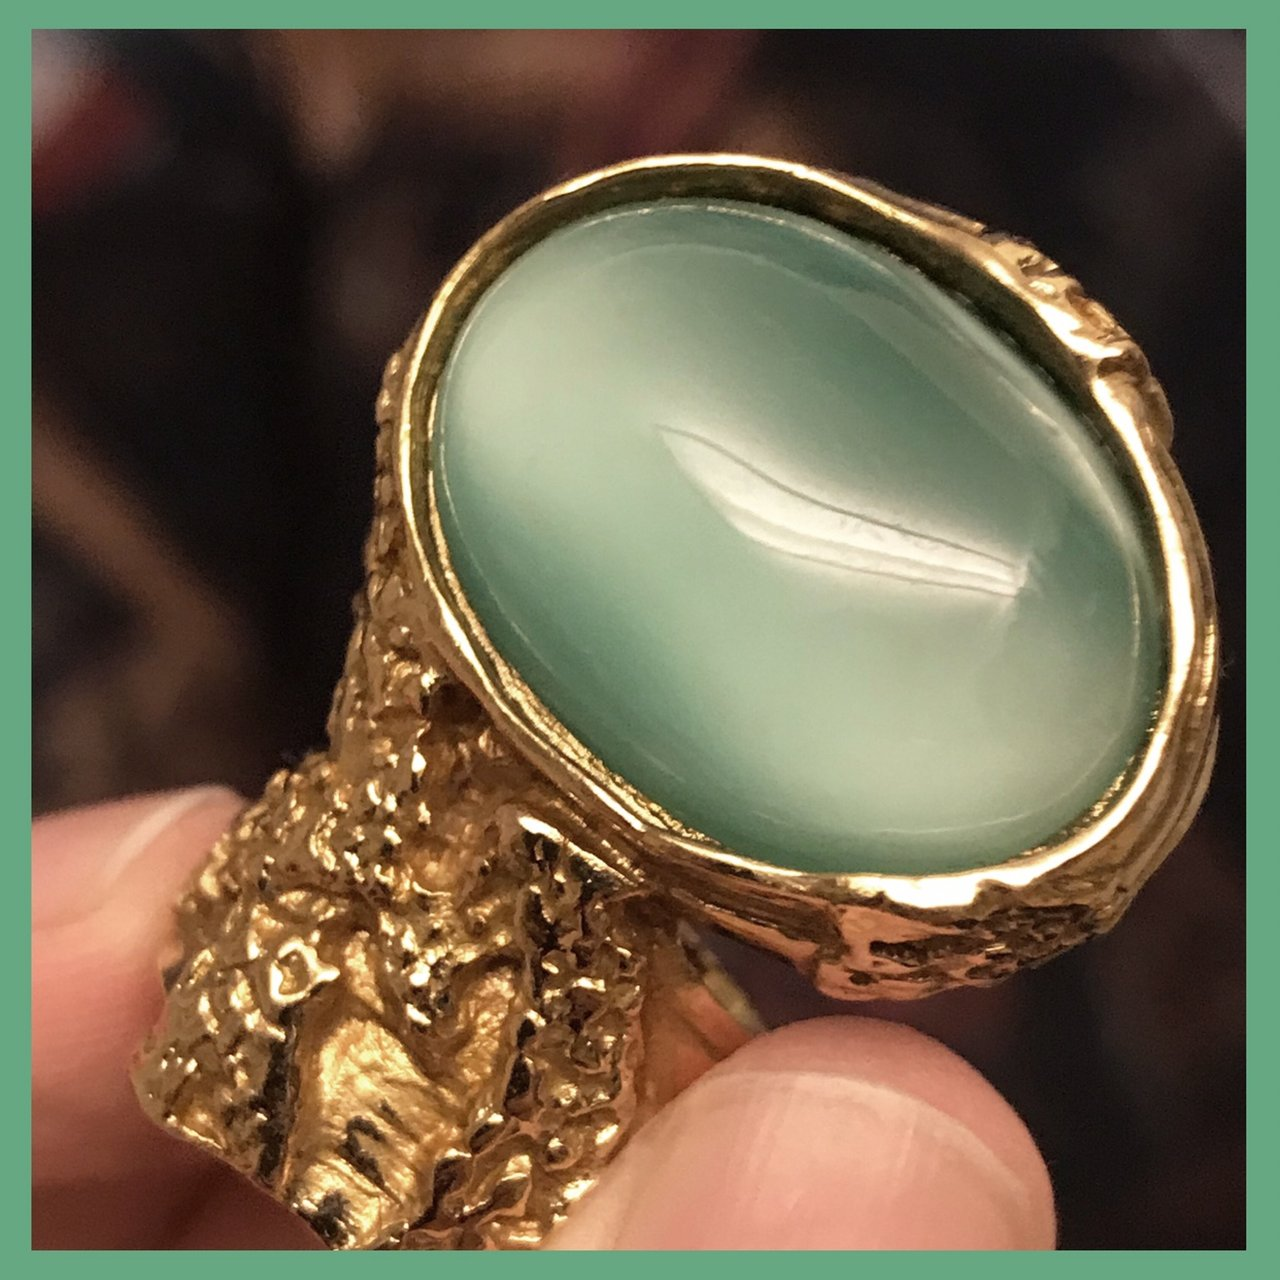 820cda1dcdb2 Ysl authentic yves saint laurent arty ring rare cloudy depop jpg 1280x1280  People with ysl arty